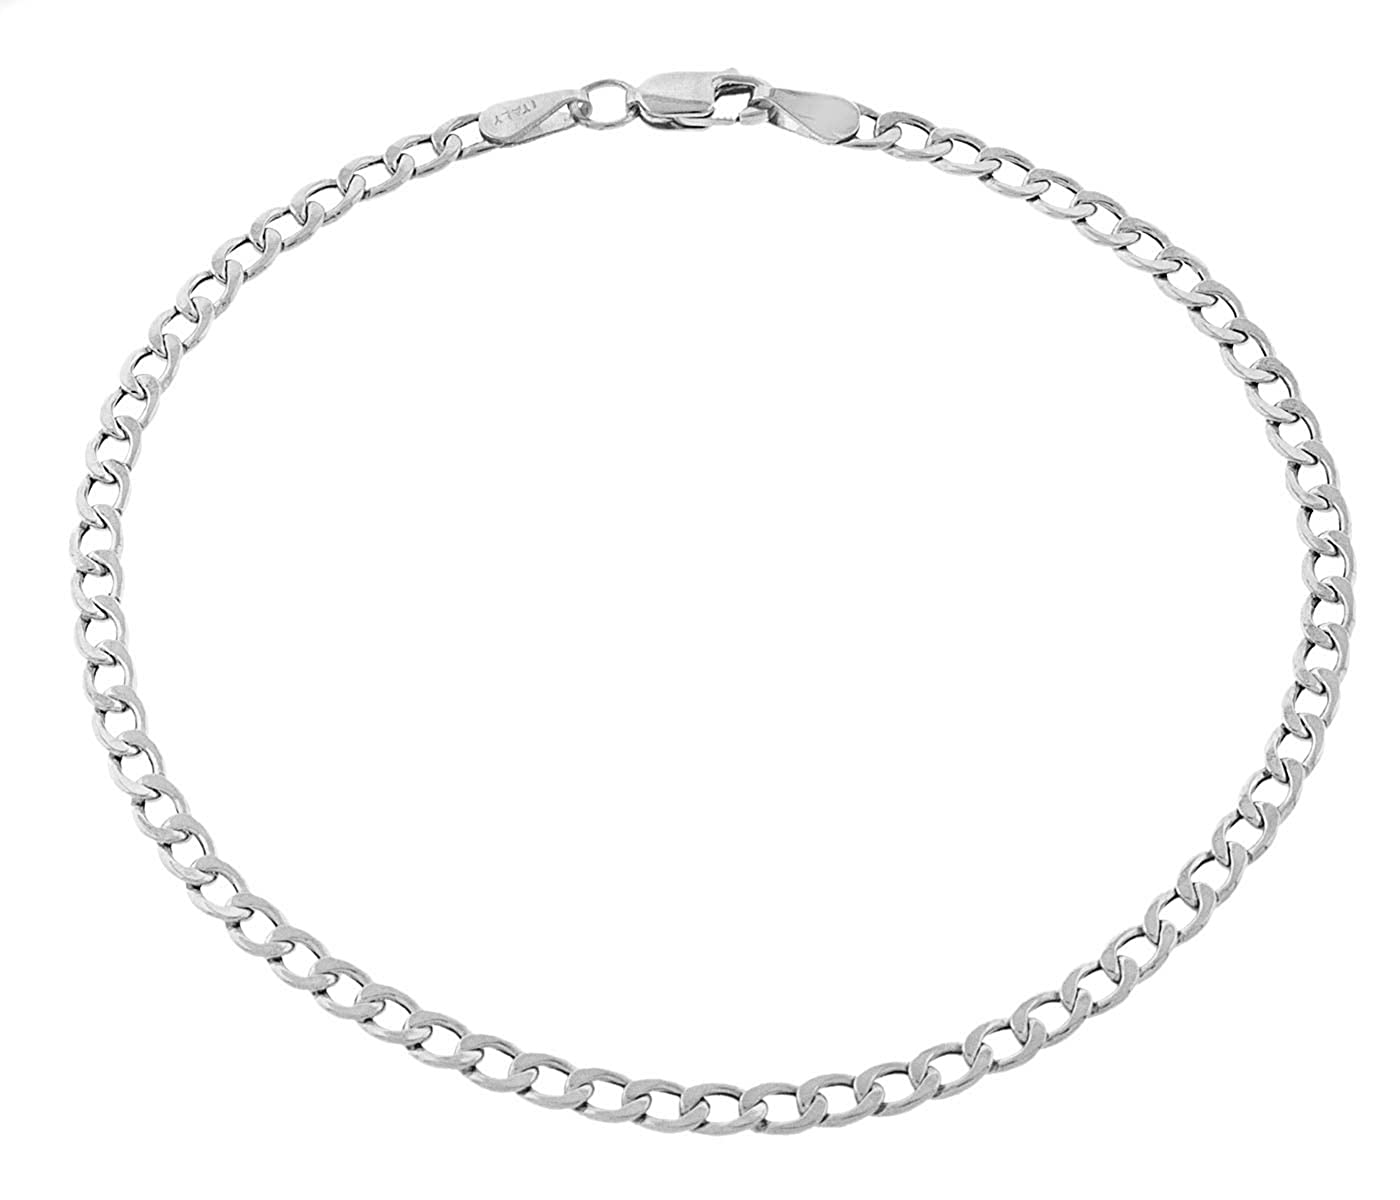 Pori Jewelers 10K Gold 3.5MM Hollow Curb//Cuban Chain Bracelet and Necklace-Made in Italy Yellow White Or Rose Gold